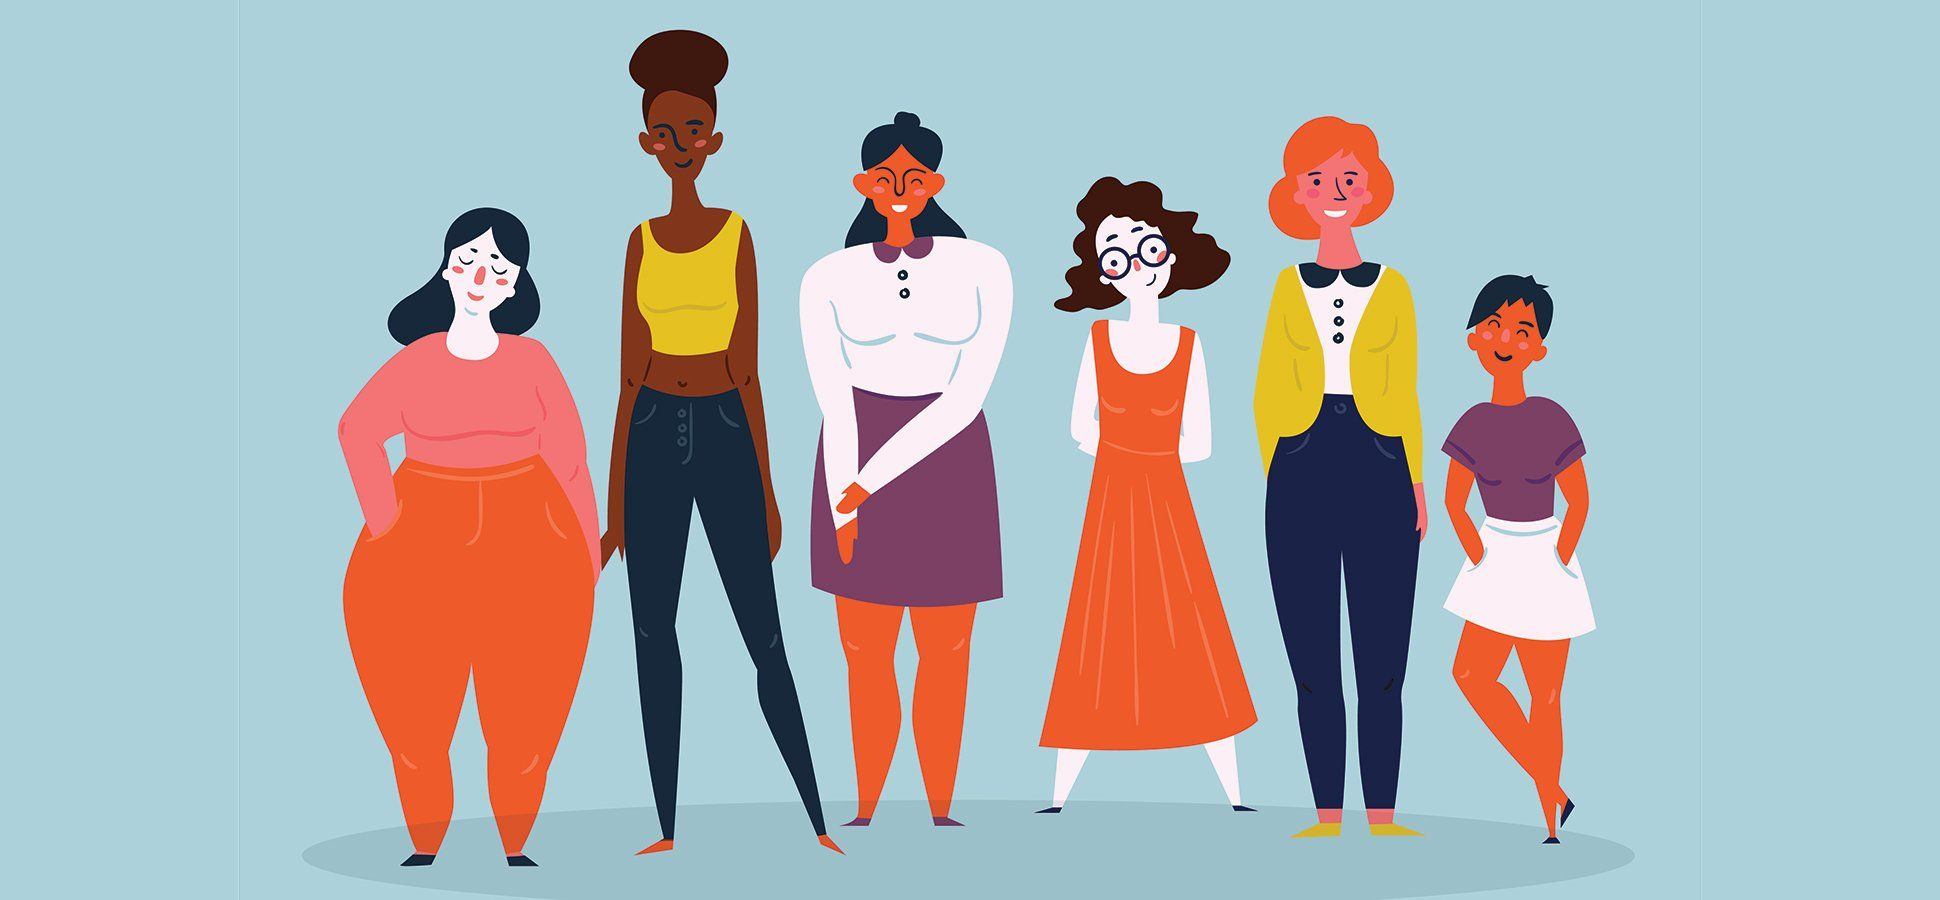 Pin on Gender: Gender Equality, Equity and Justice Issues